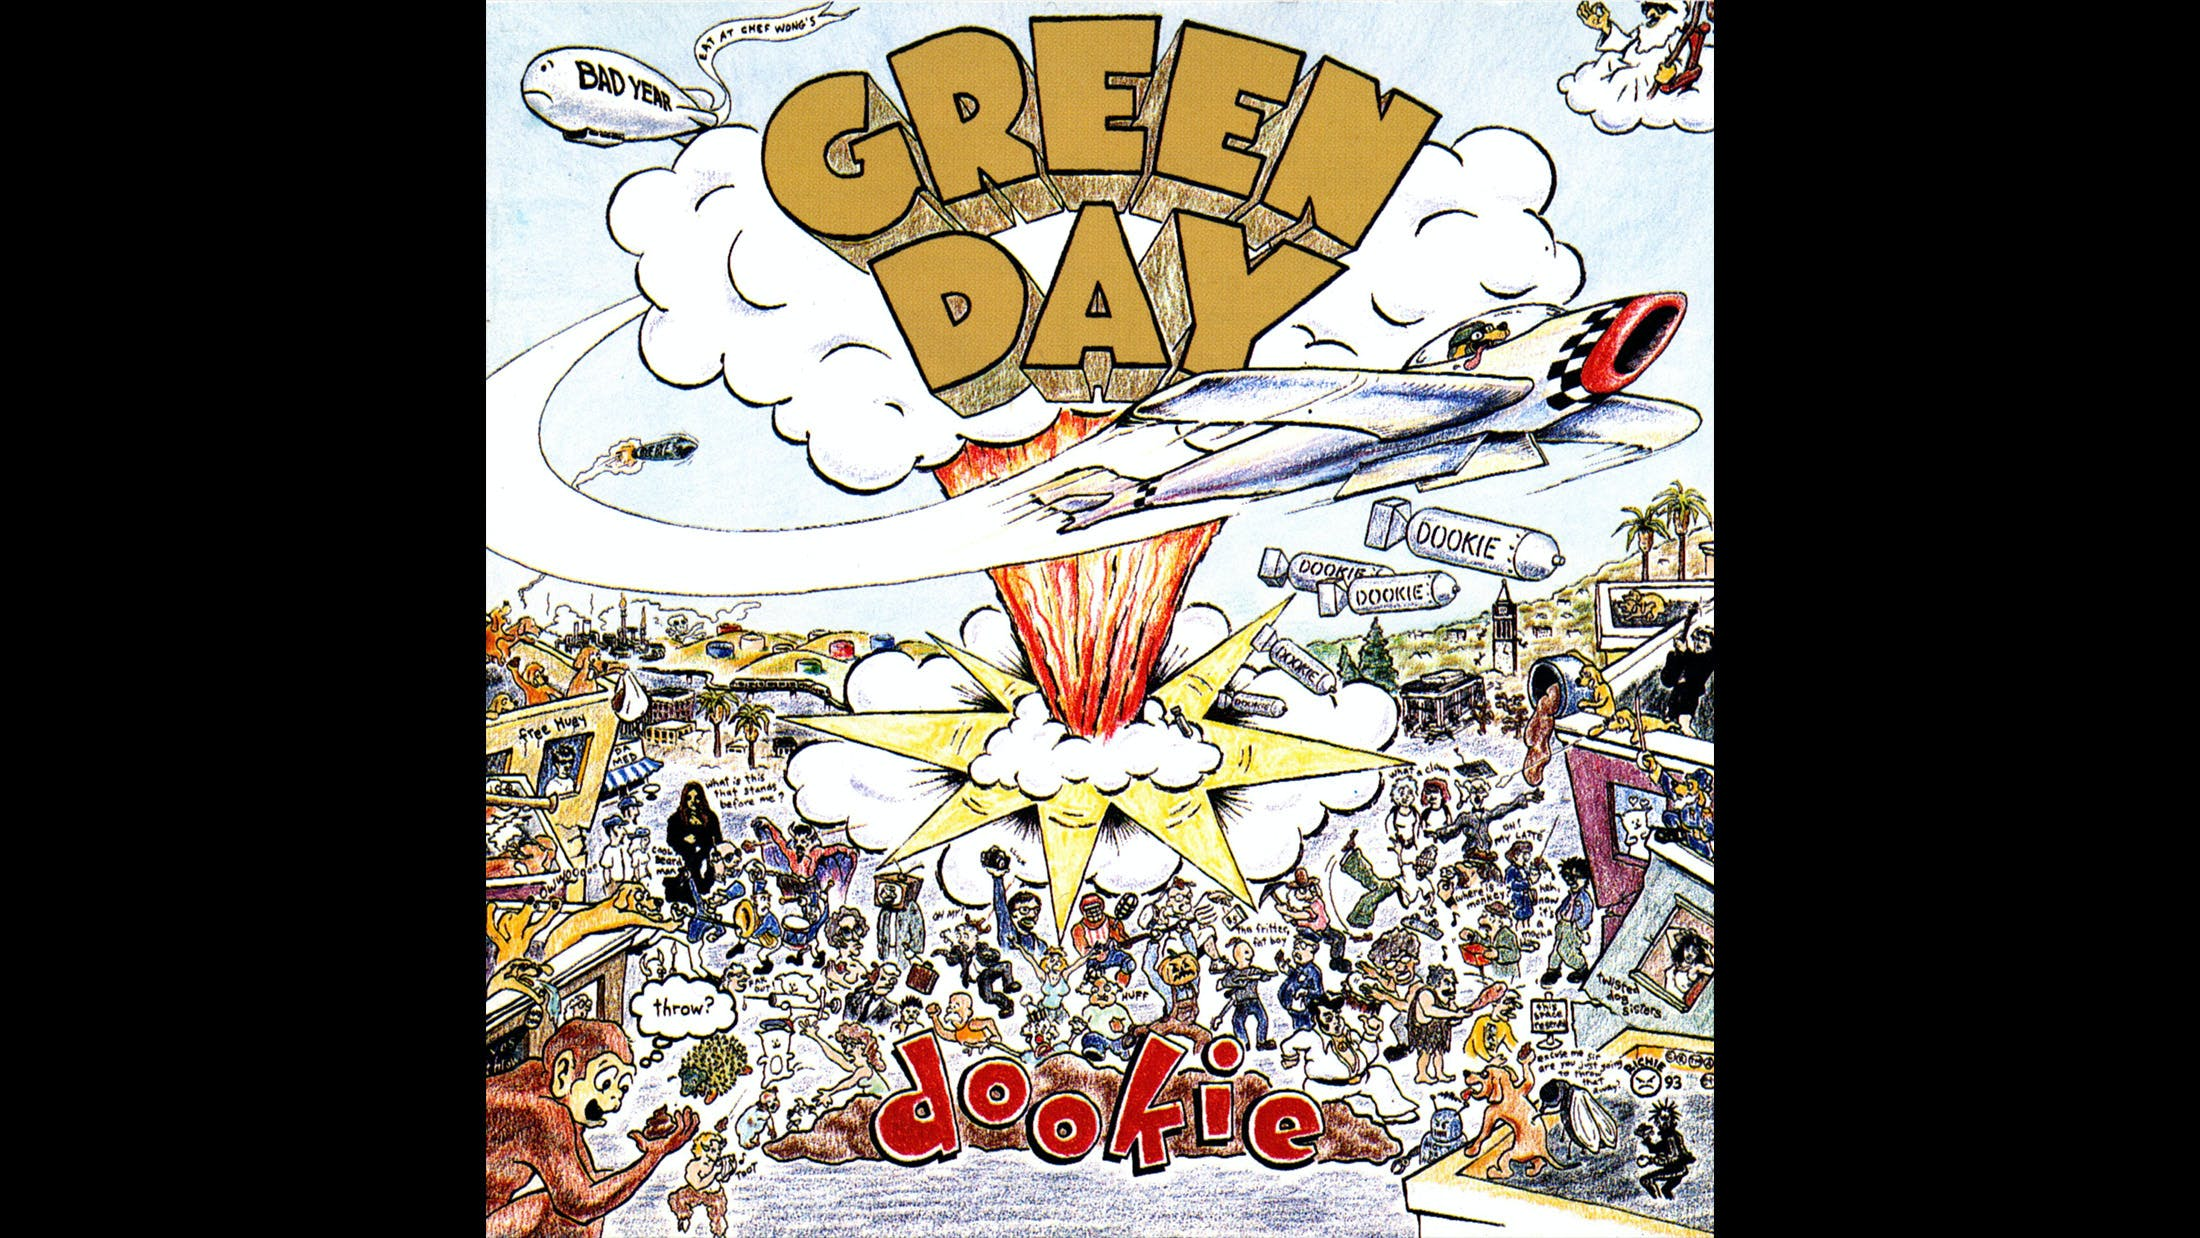 2. Green Day - Dookie (1994)